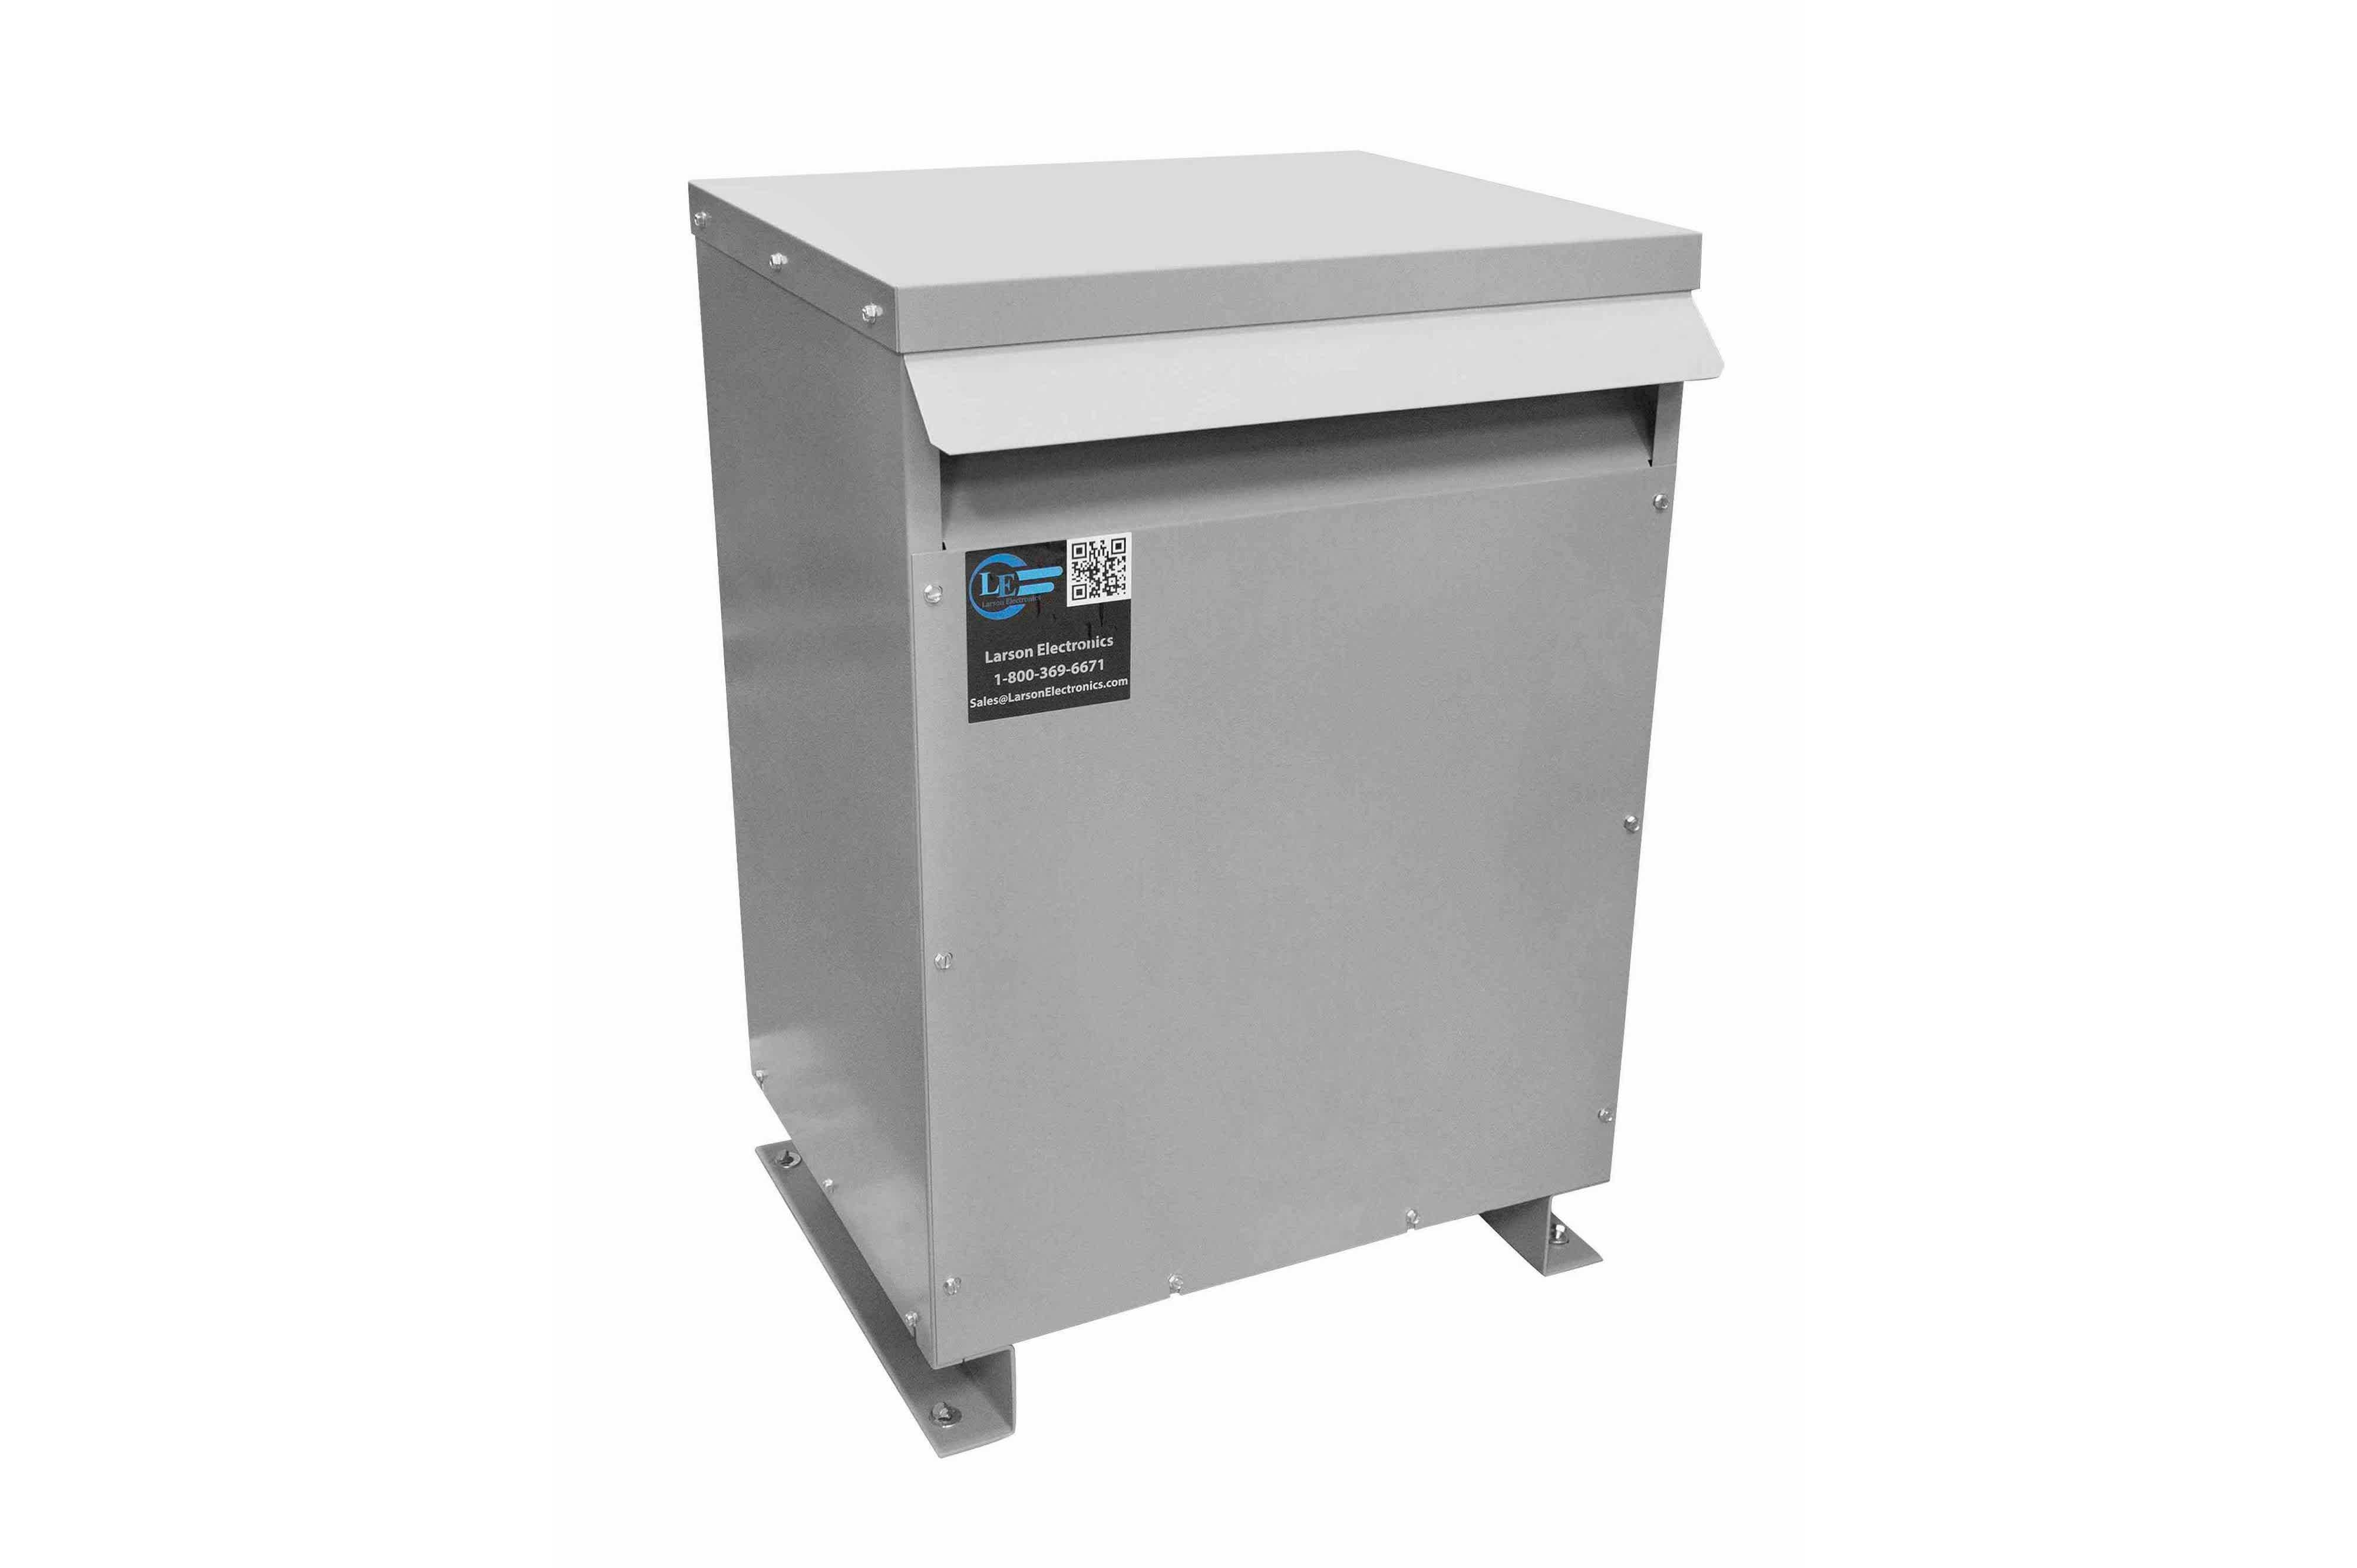 300 kVA 3PH Isolation Transformer, 575V Delta Primary, 400V Delta Secondary, N3R, Ventilated, 60 Hz